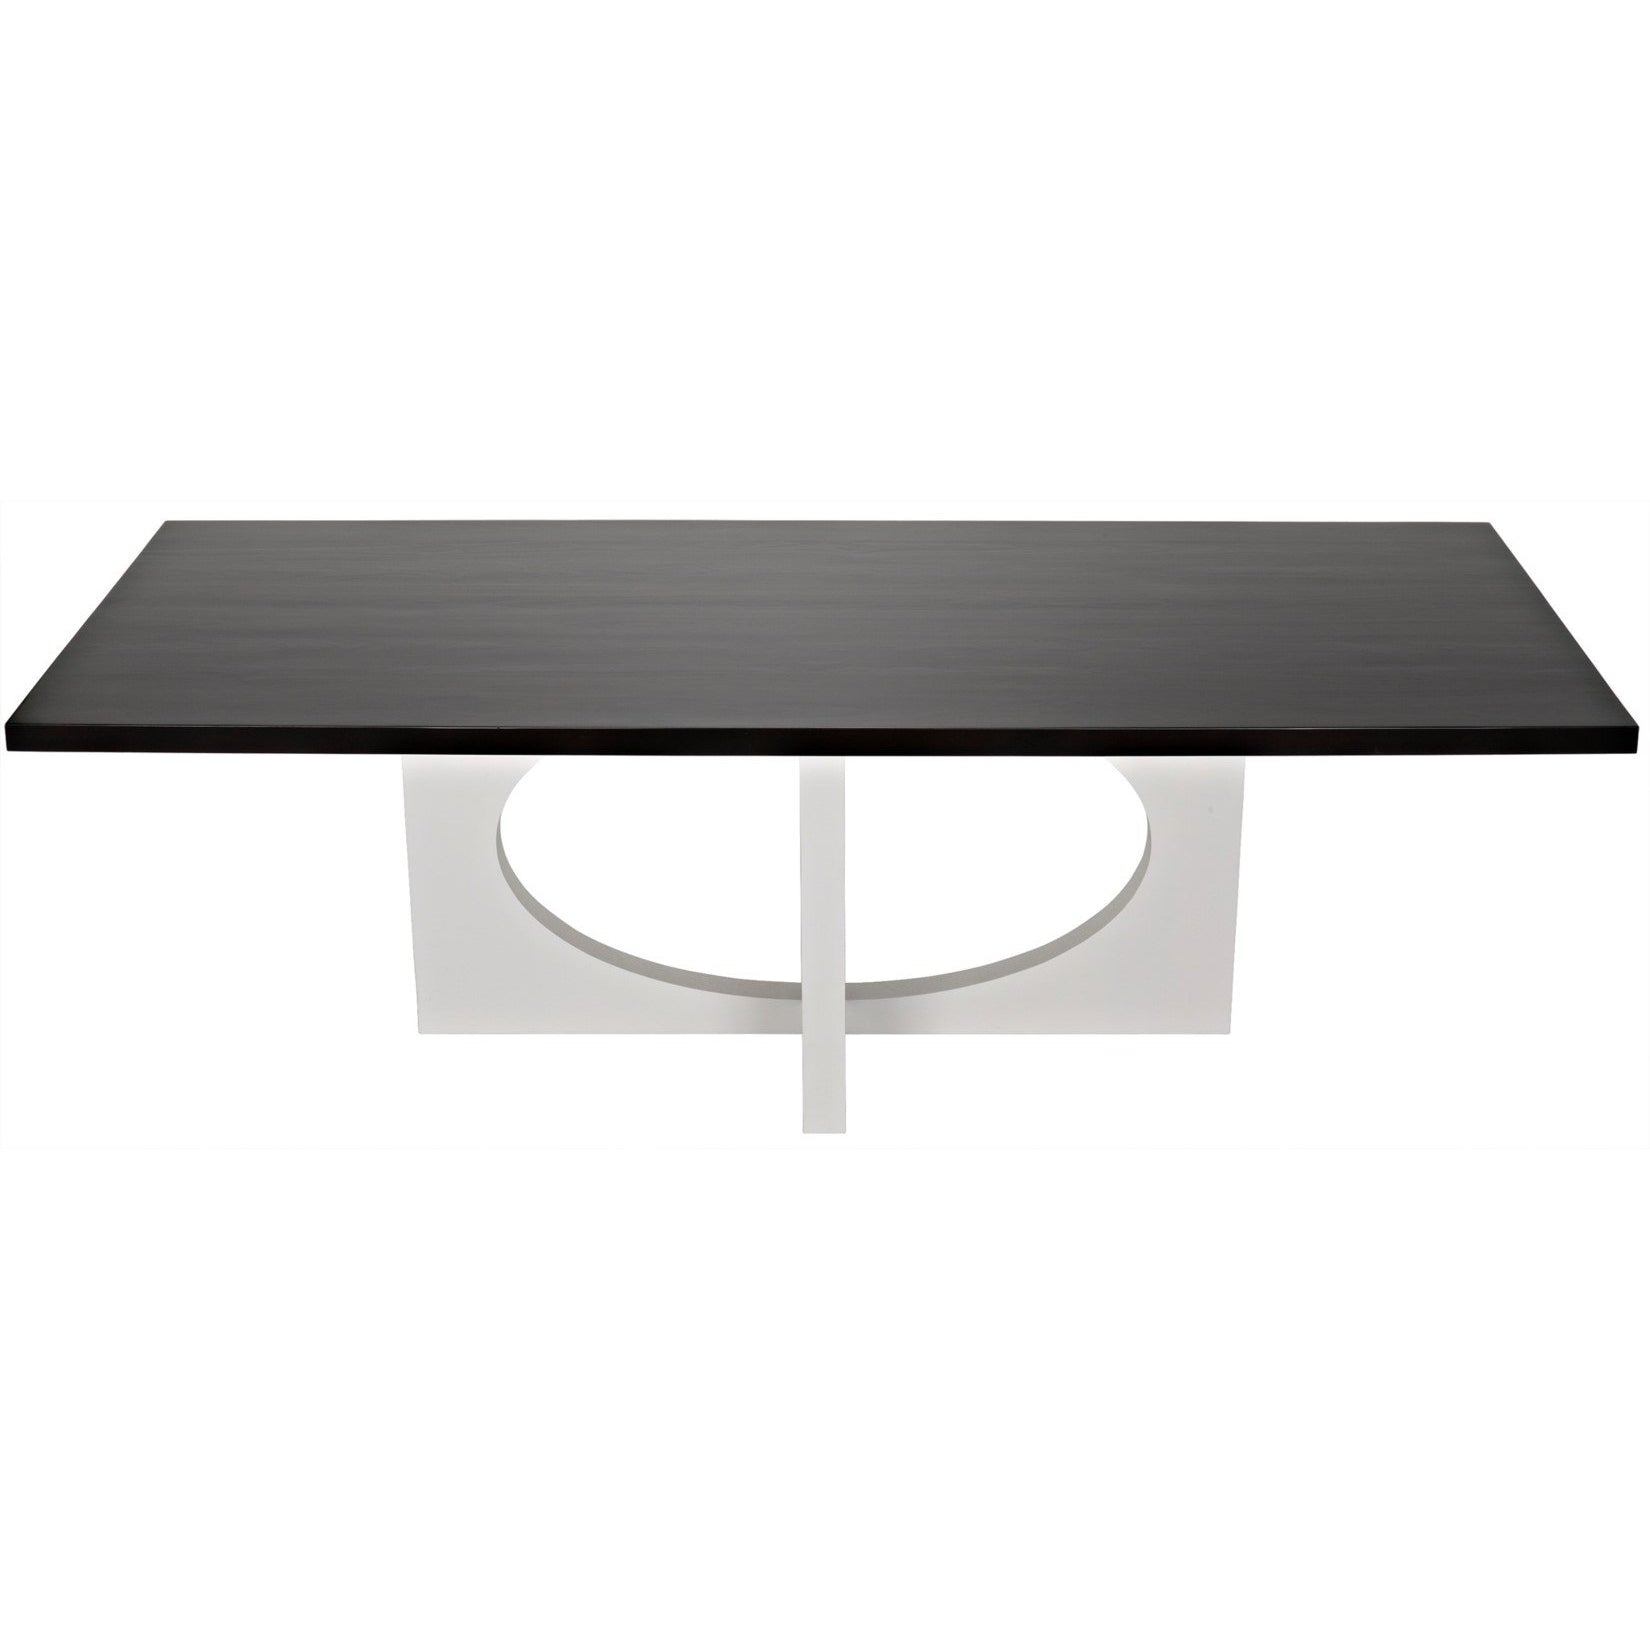 CFC Furniture Buttercup Dining Table, Alder Top/Poplar Base